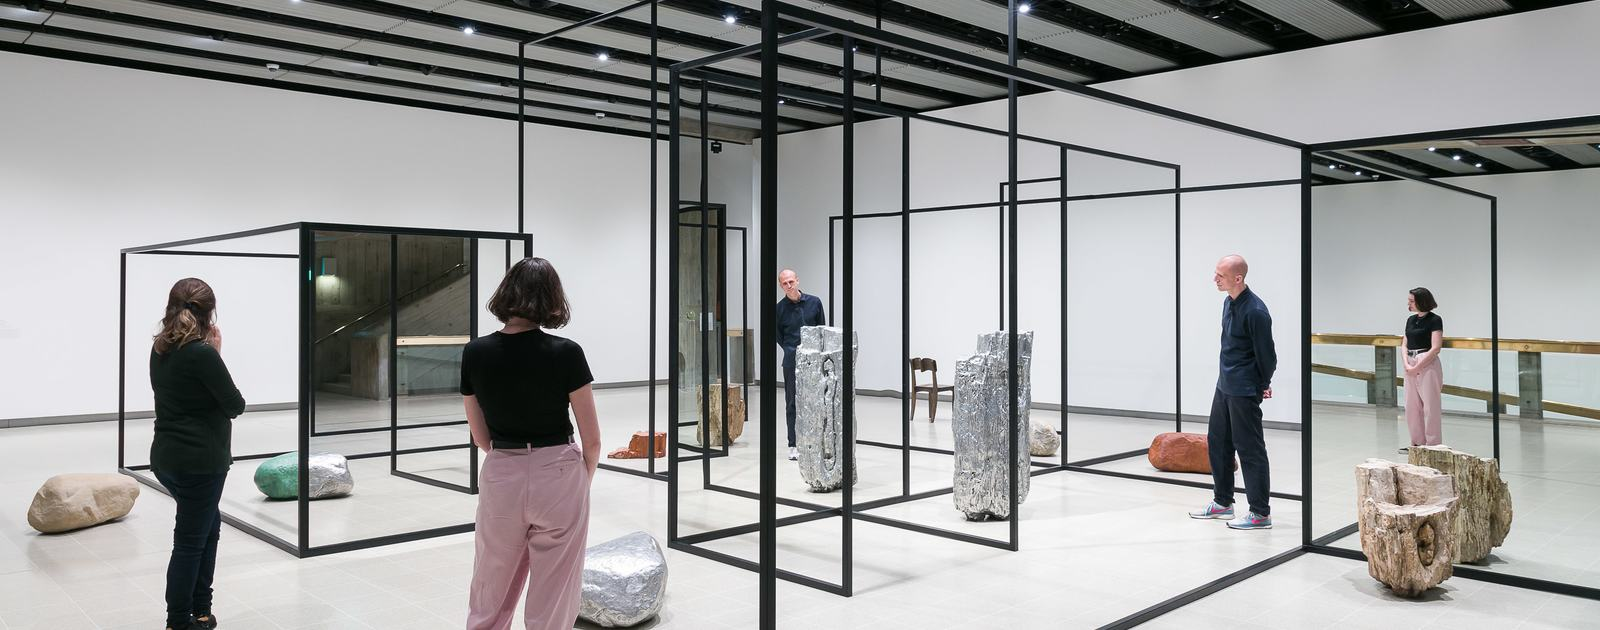 Installation view of Alicja Kwade's WeltenLinie, 2017 at Space Shifters, Hayward Gallery 2018